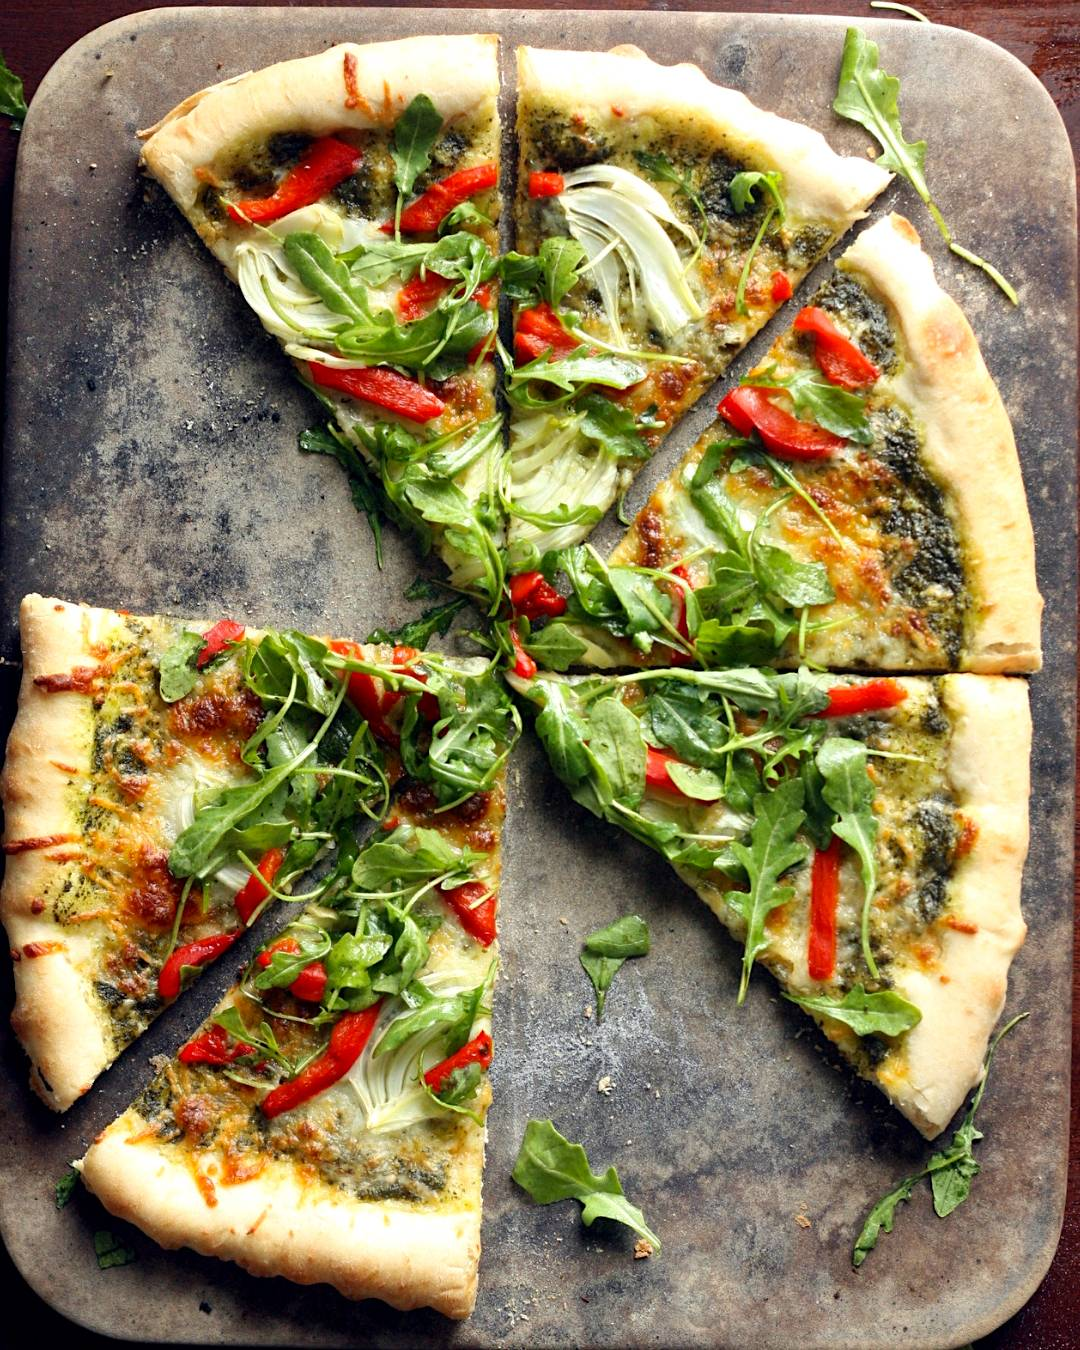 Store-bought pizza dough topped with pesto, roasted red peppers and fresh arugula